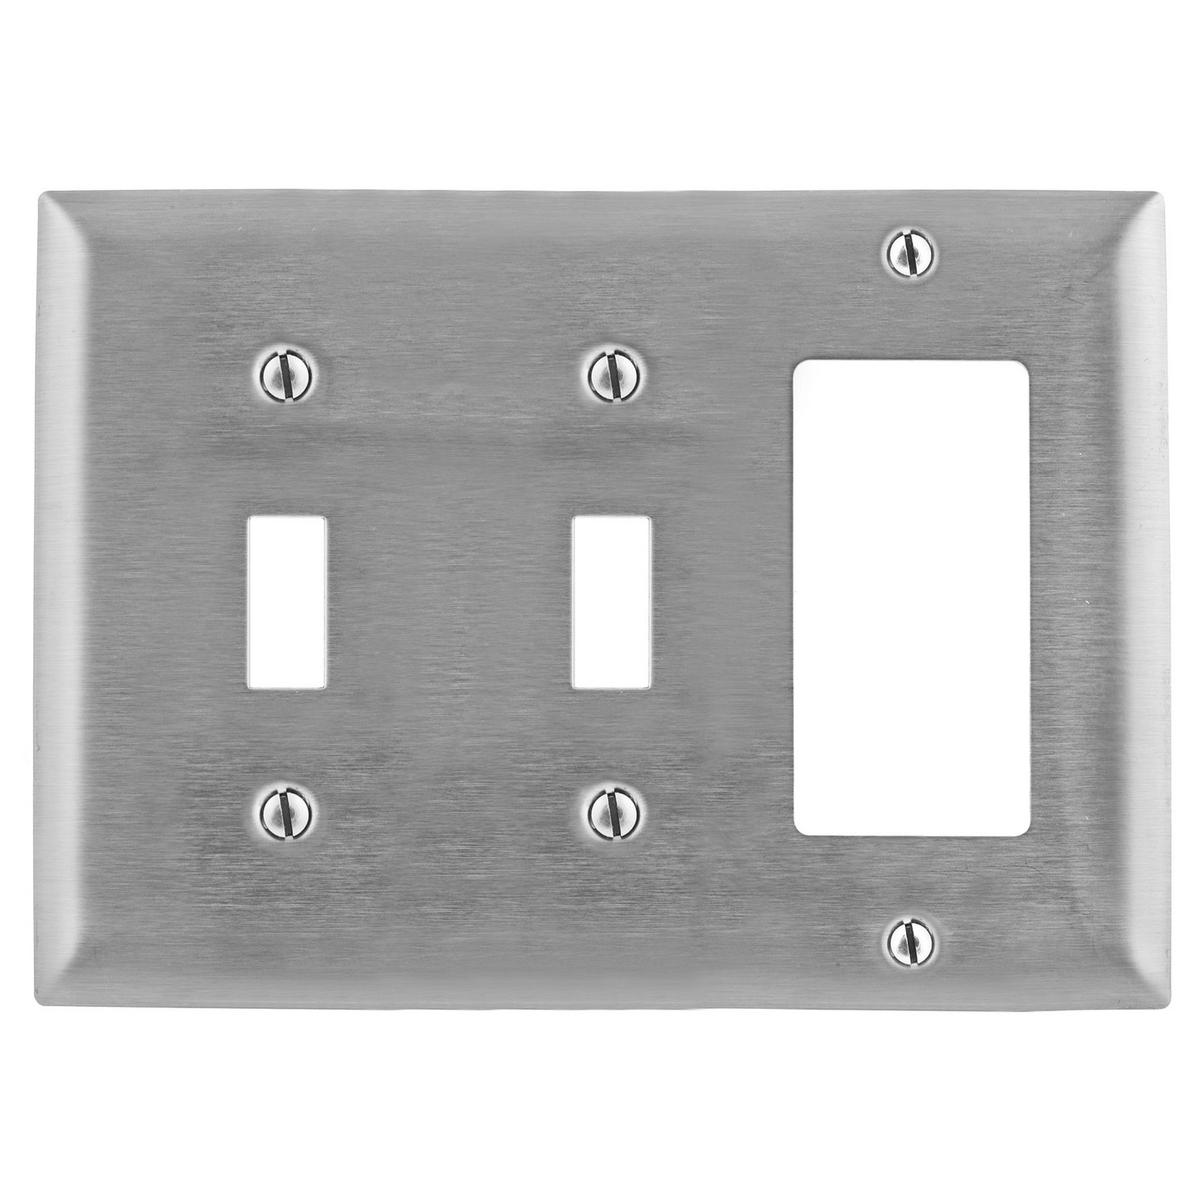 Hubbell SS226 3-Gang Stainless Steel 2-Toggle 1-Decorator Switch Screw Mount Combination Wallplate